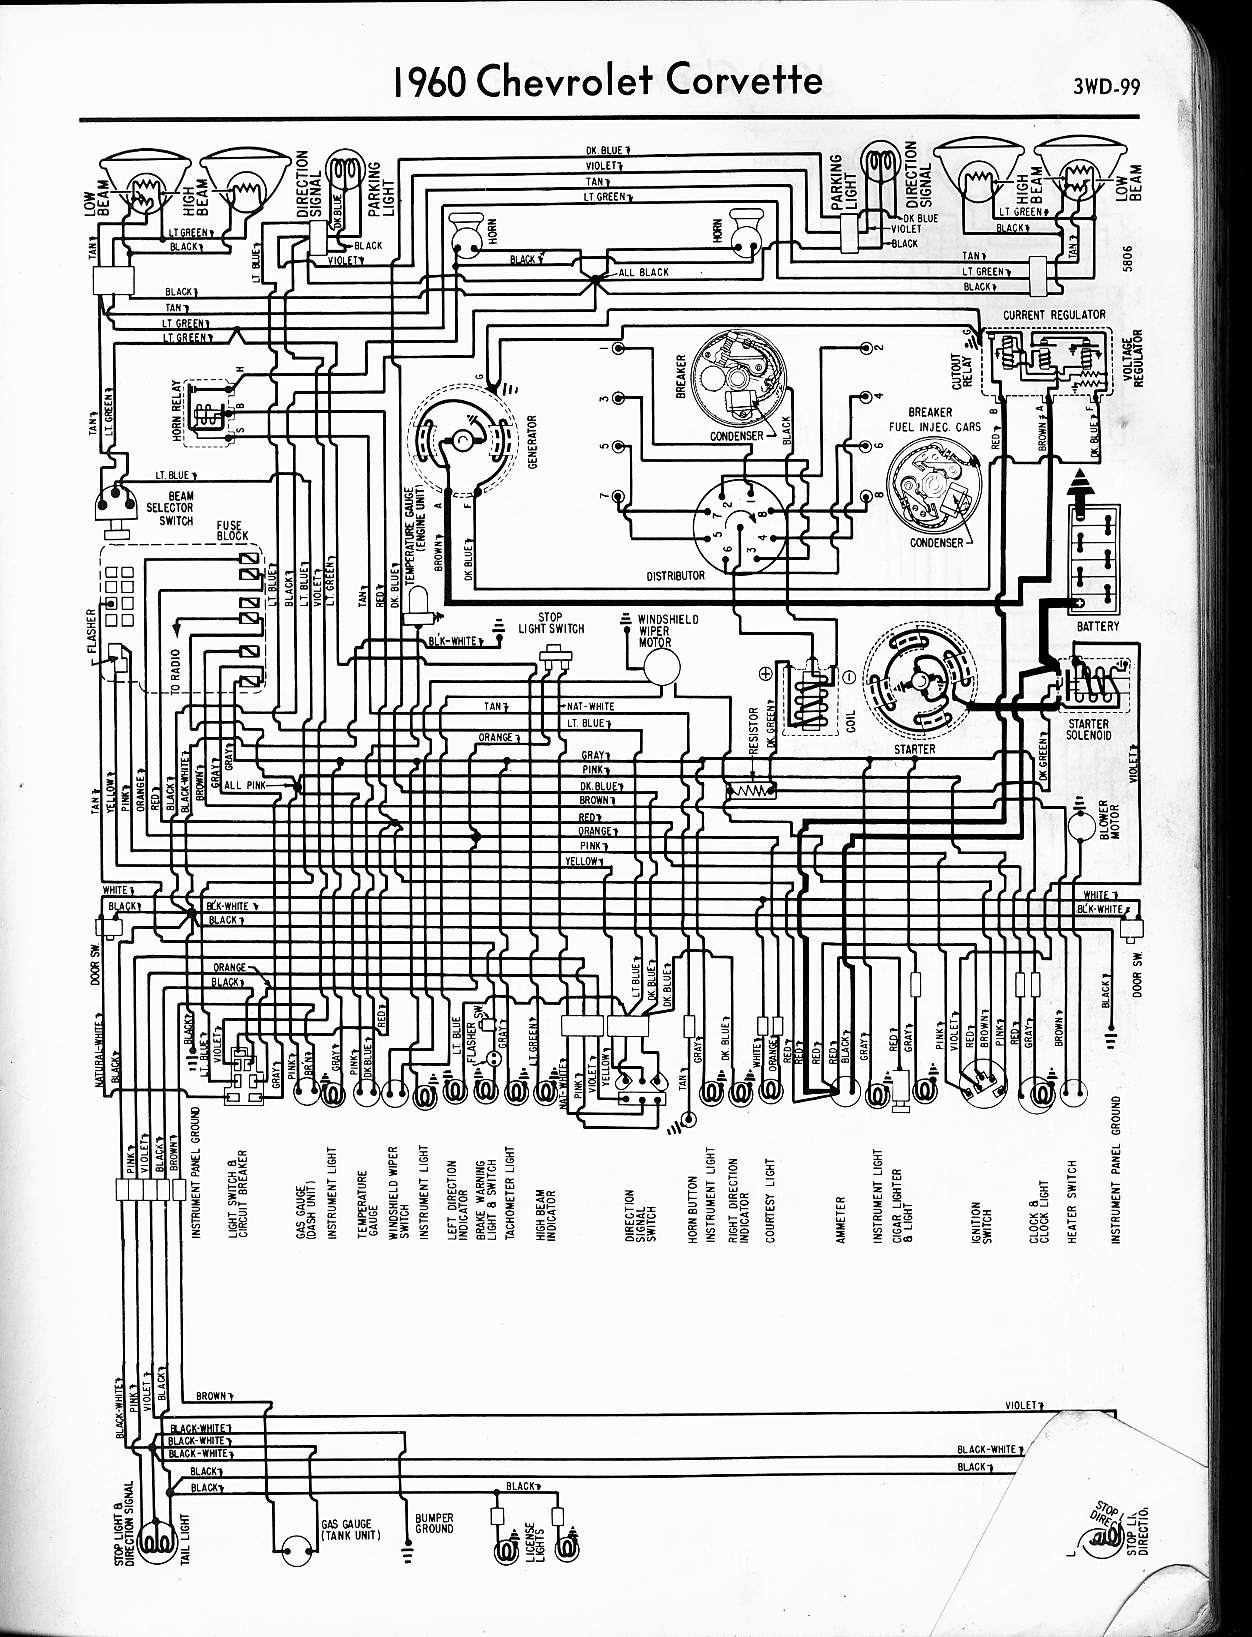 57 65 chevy wiring diagrams rh oldcarmanualproject com 1960 chevy truck wiring diagram 1960 chevy truck wiring diagram free